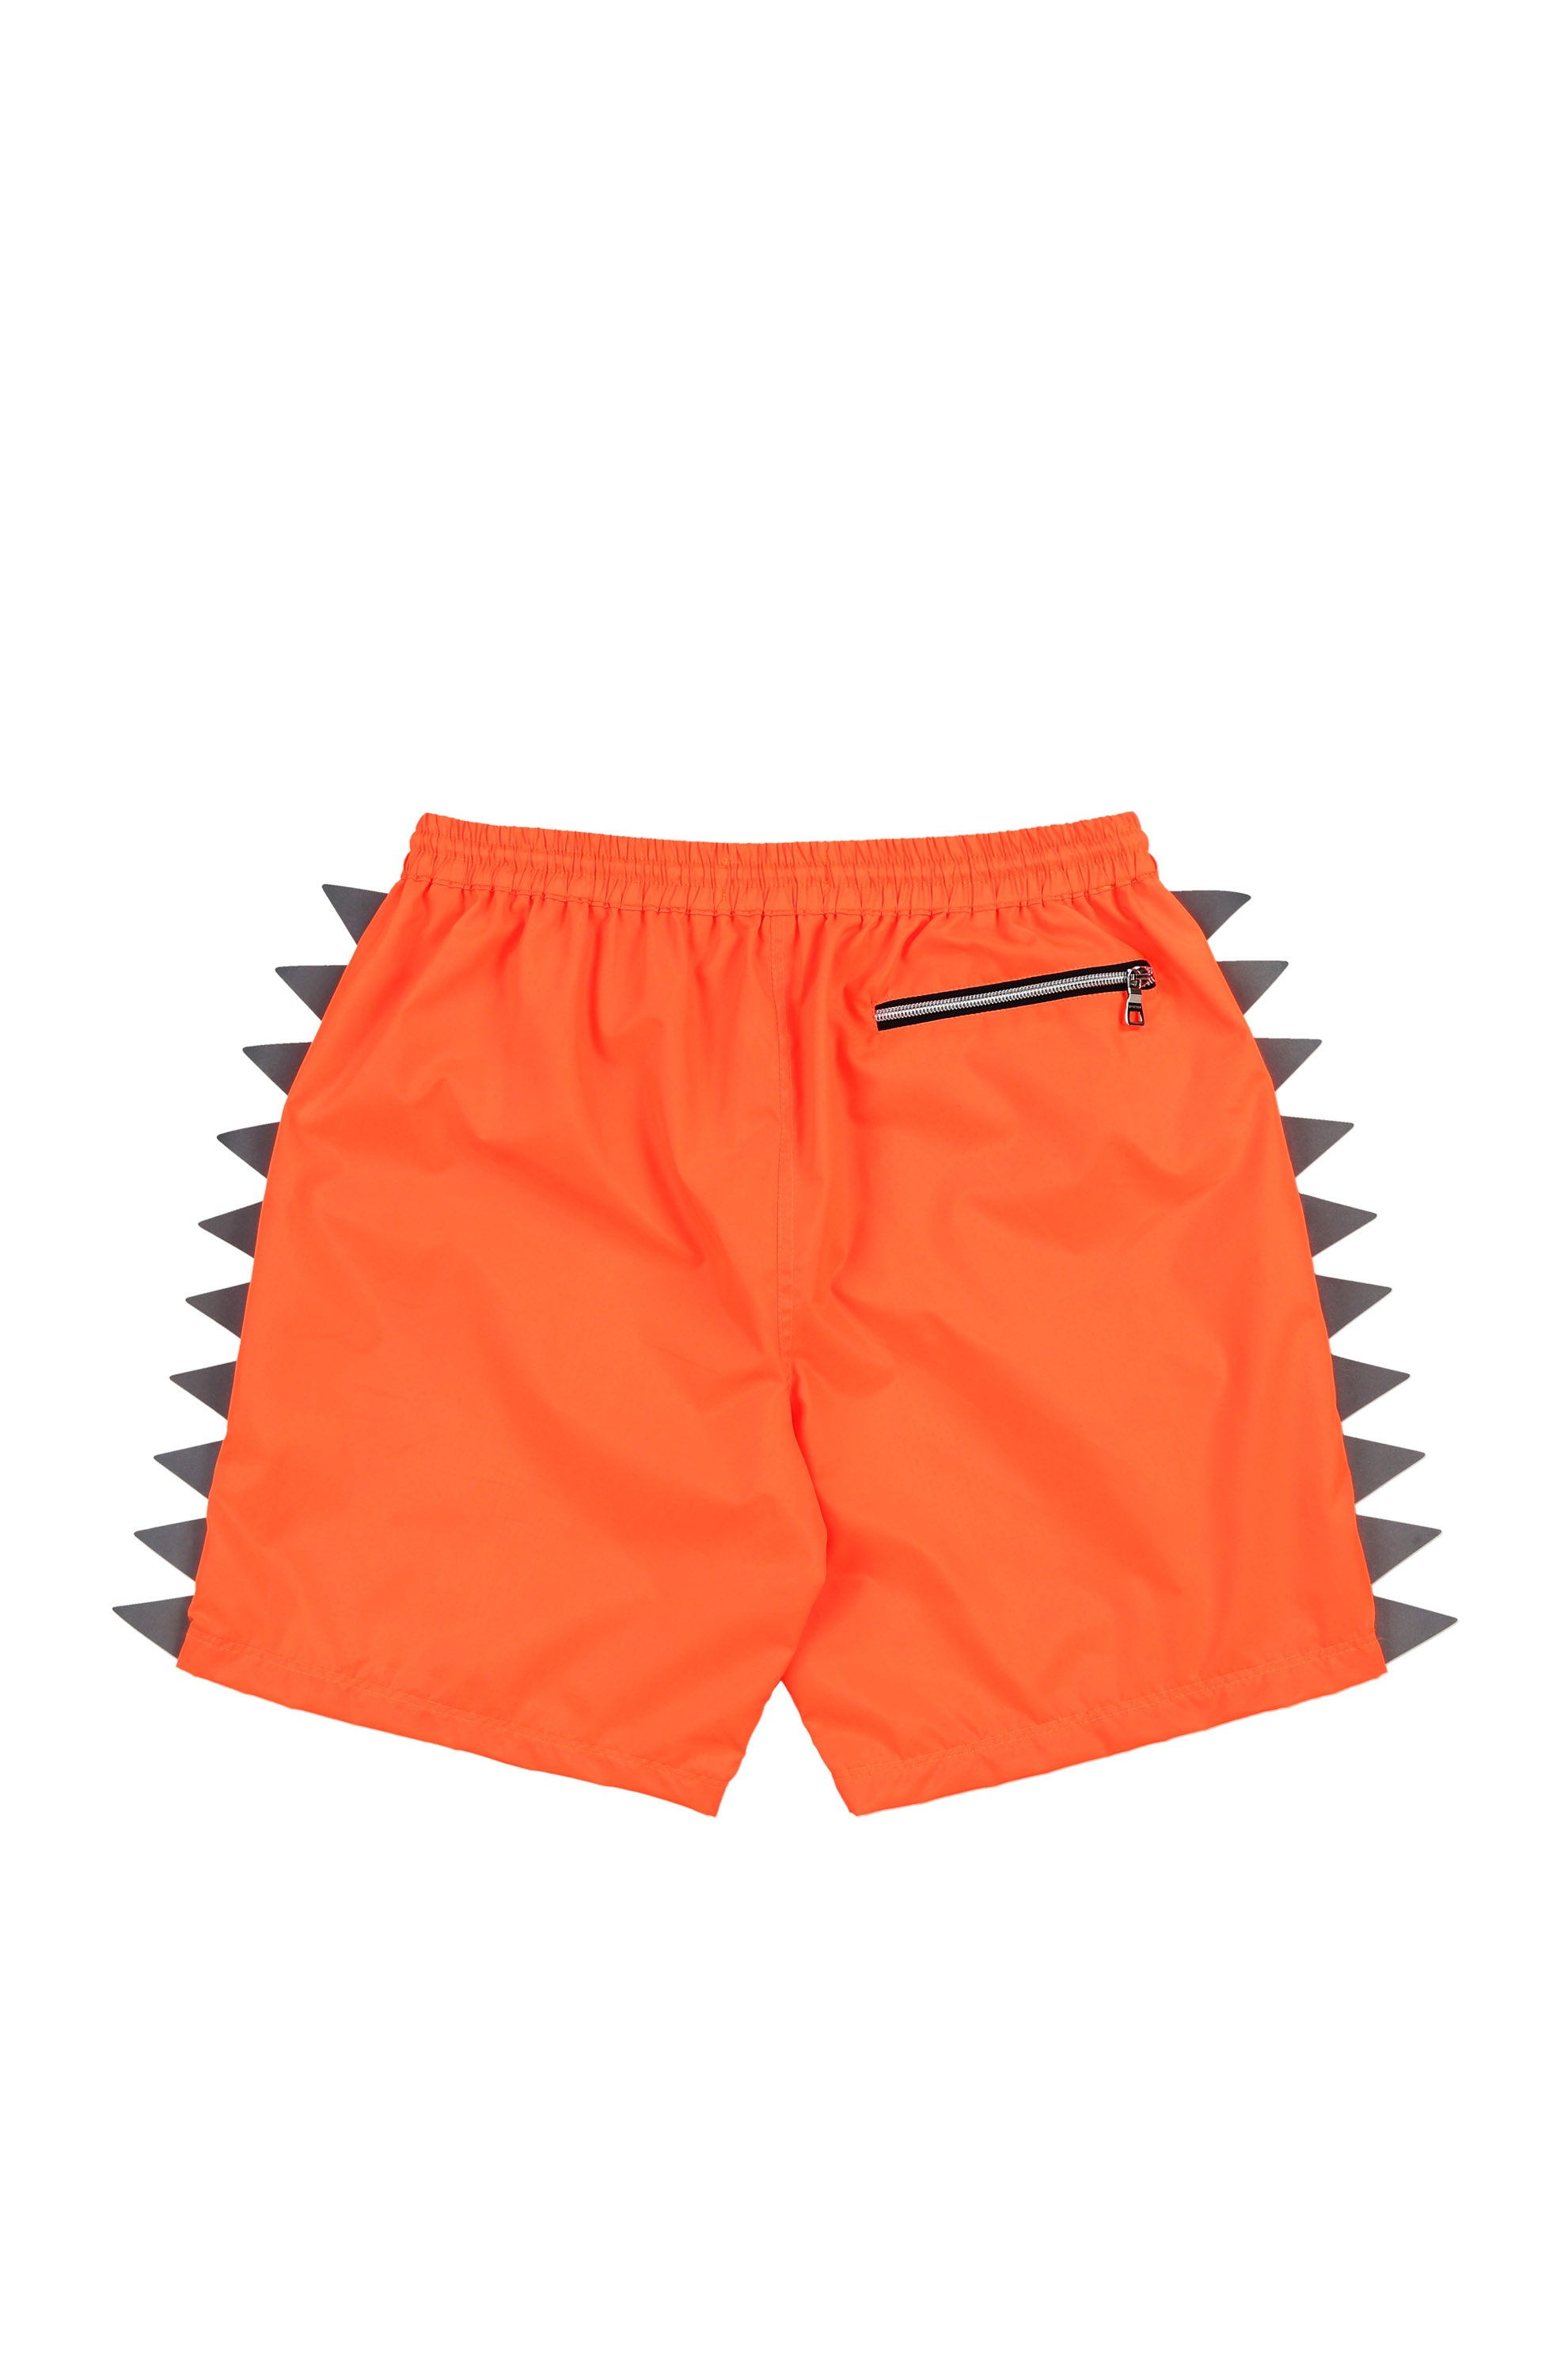 Oyster Pennant Flag Short (Orange)